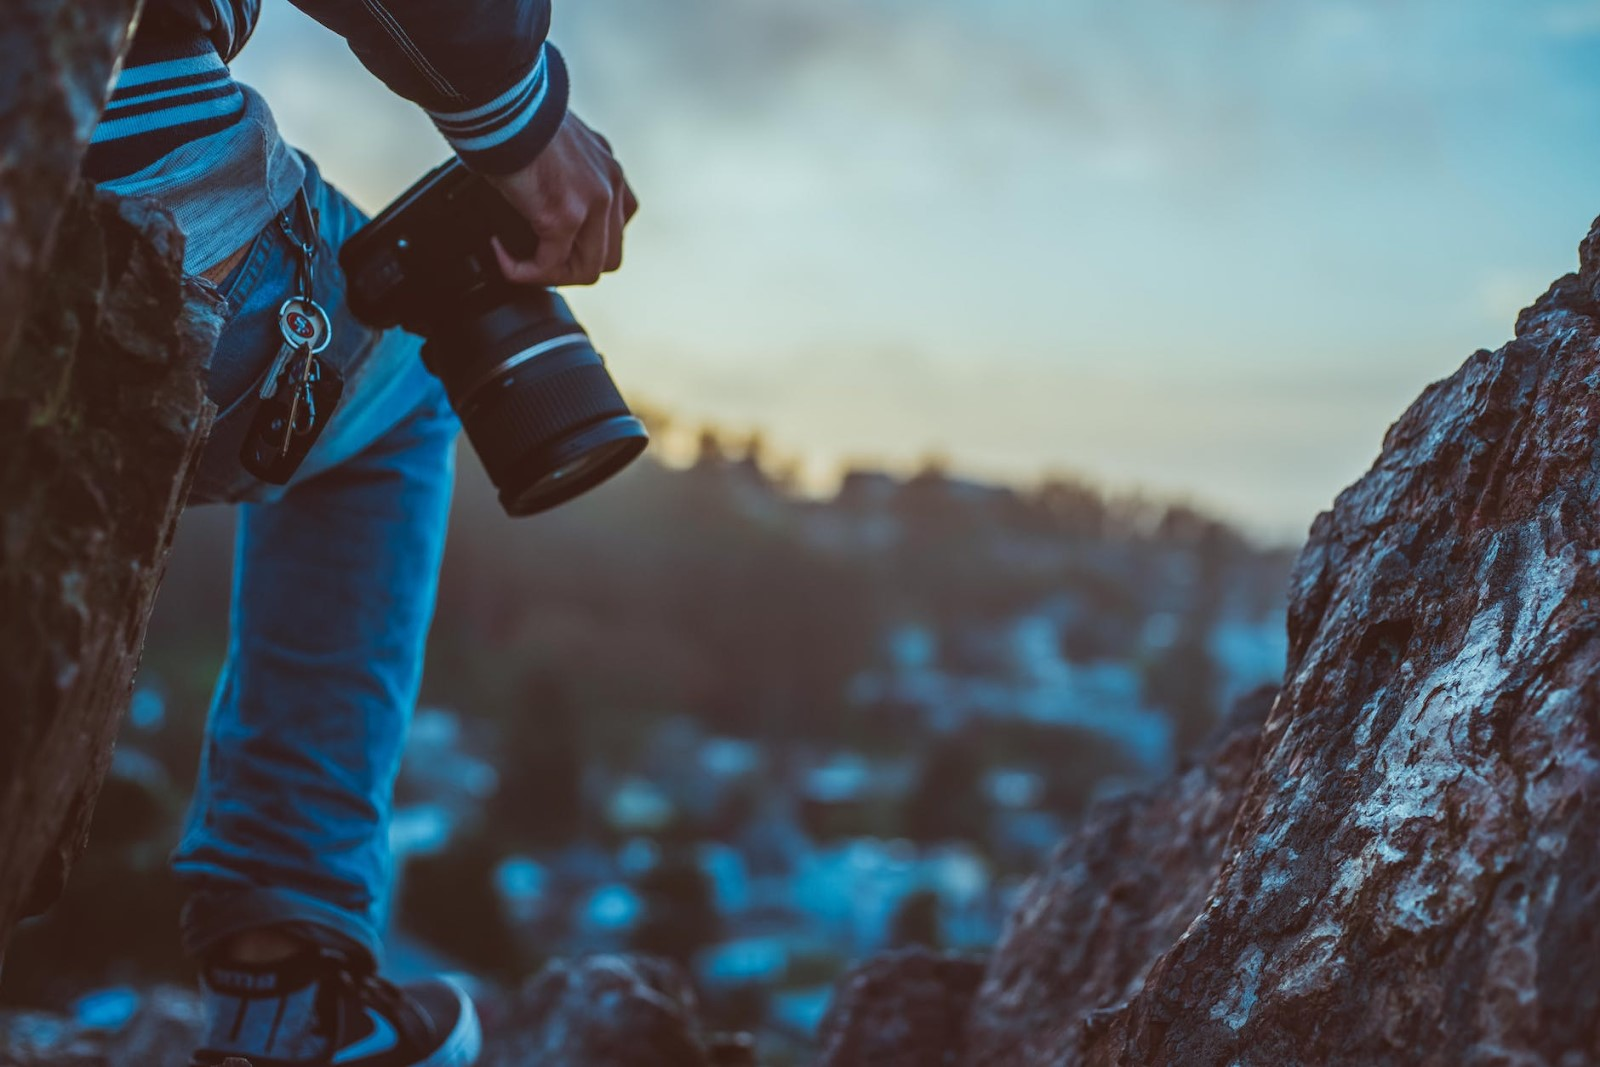 6 TIPS FOR TAKING FANTASTIC TRAVEL PHOTOS